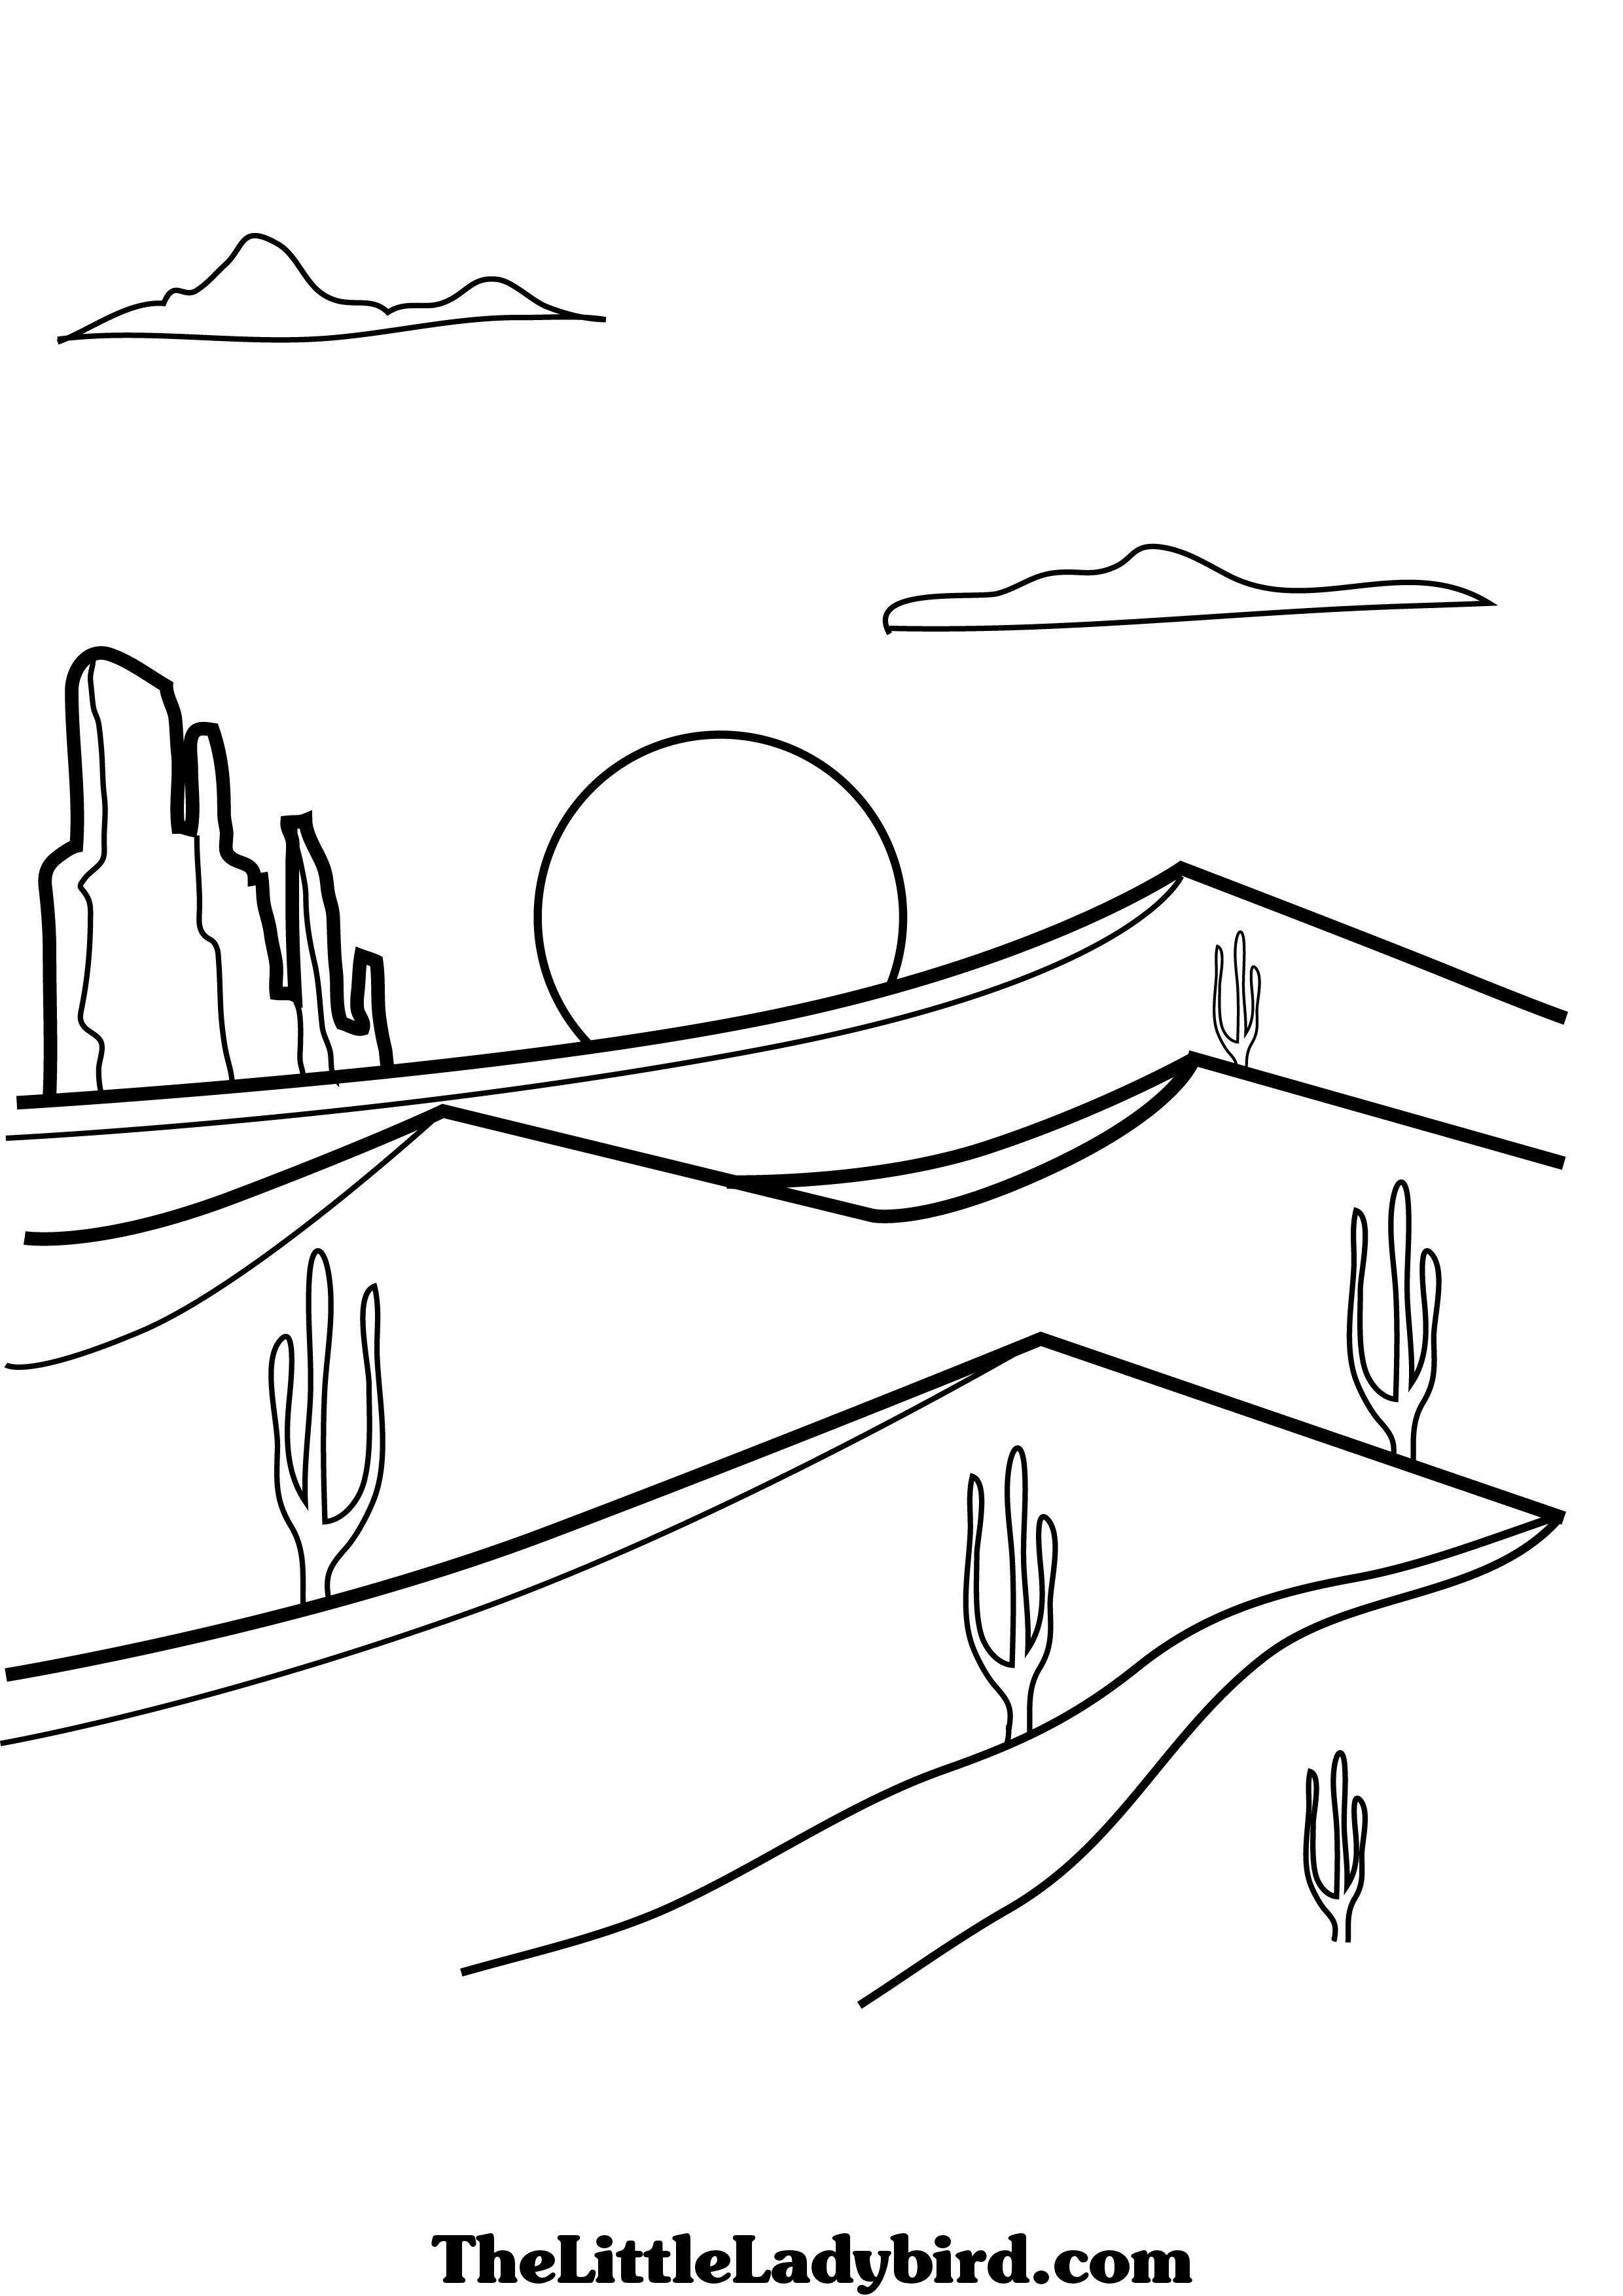 Desert Free Online Coloring Color On Pages Coloring